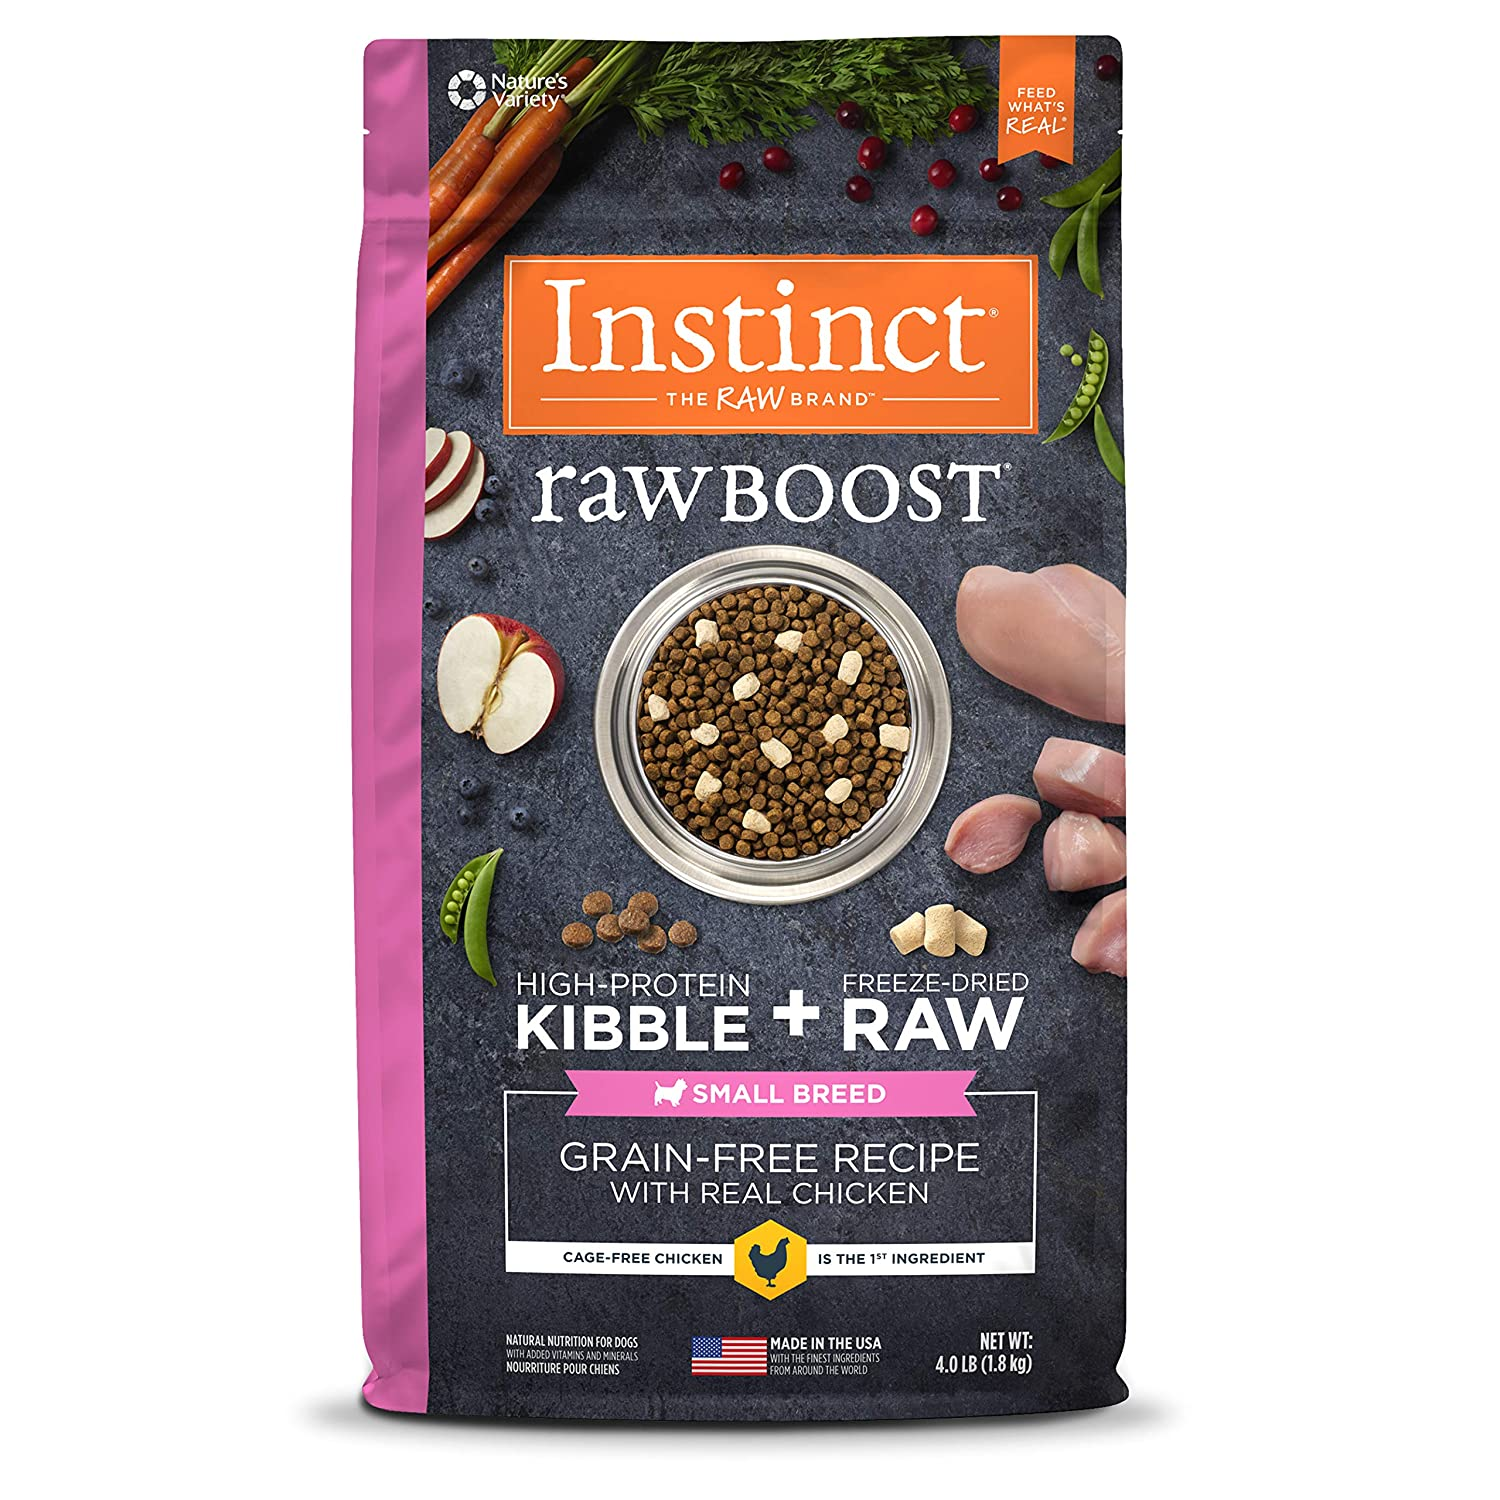 3.Instinct Raw Boost Small Breed Grain-Free Natural Dry Dog Food